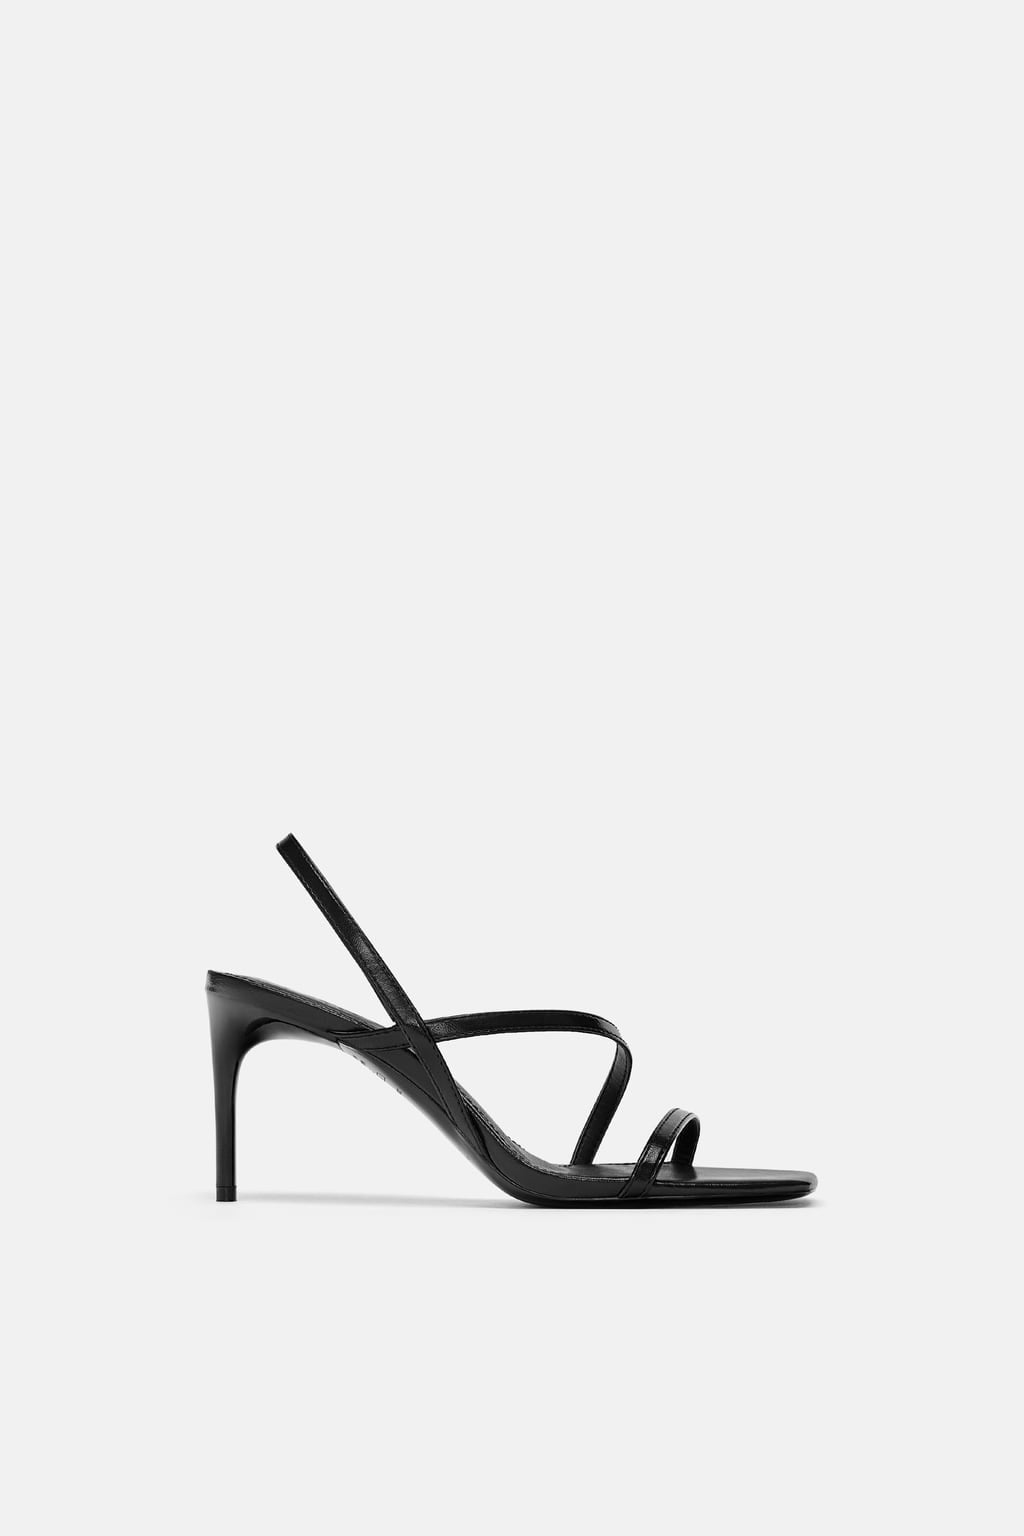 first look offer discounts cheaper Zara Strappy Sandals | I HATE Getting Dressed For Work in ...